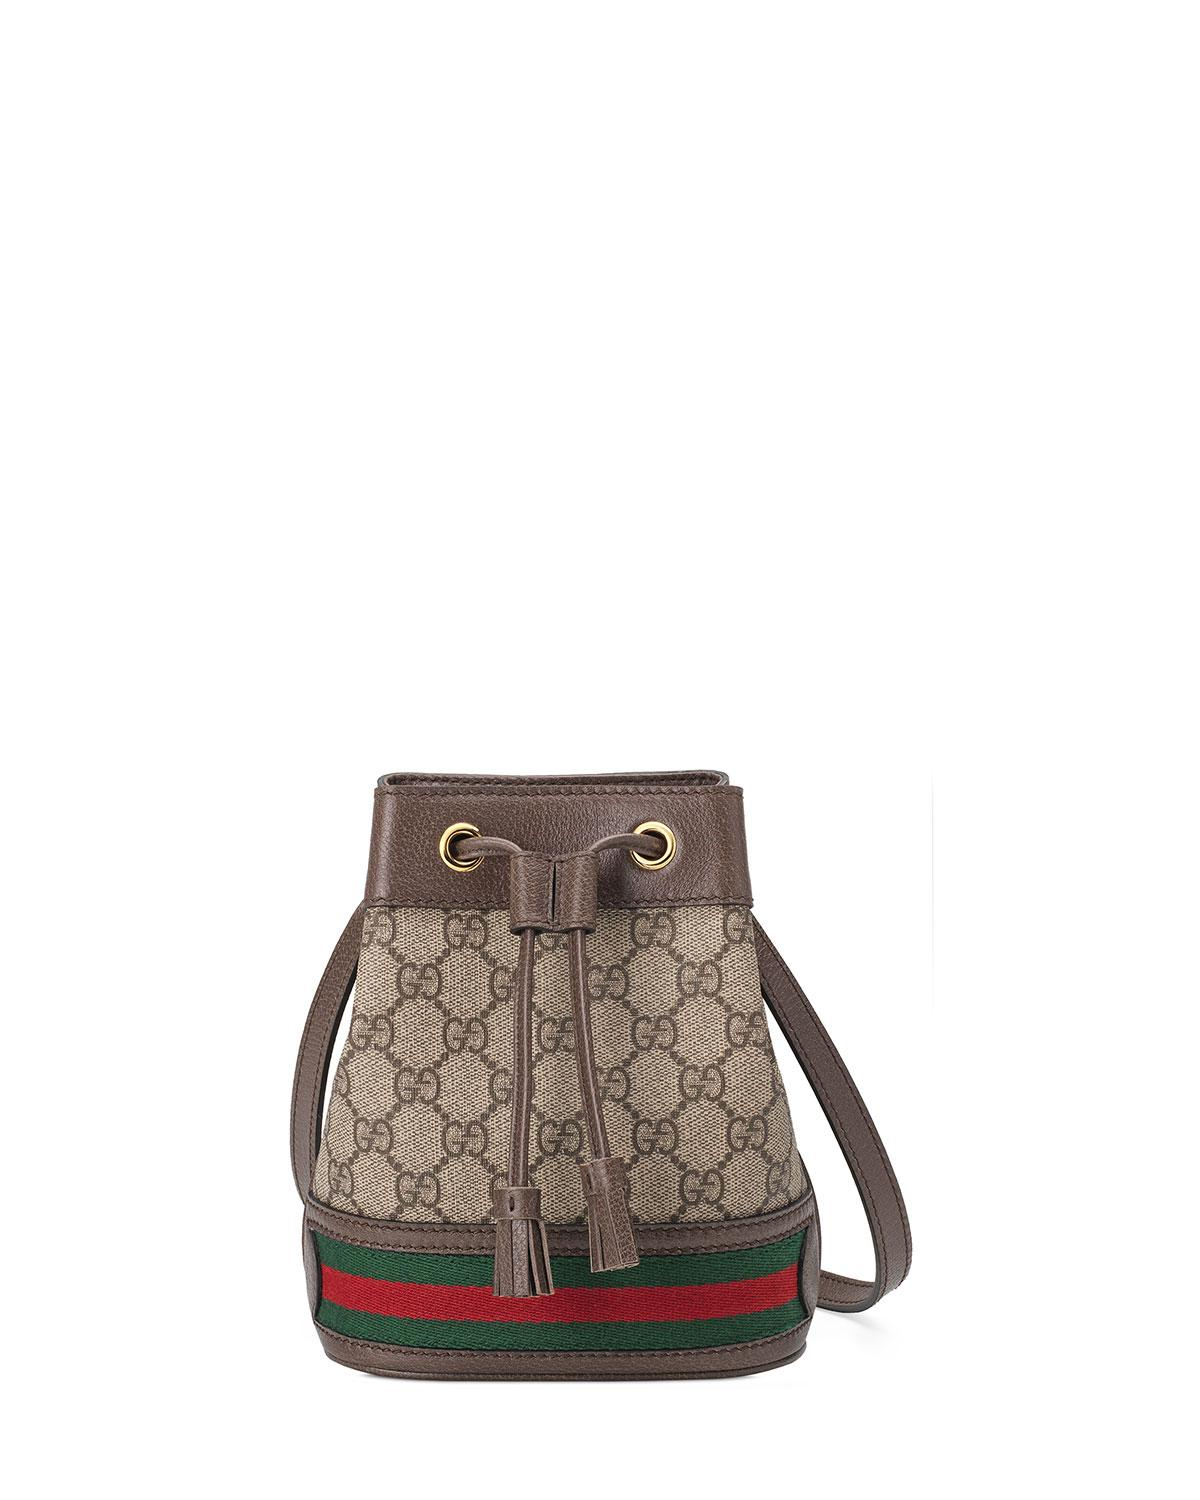 243be79d7c8b0e Gucci Ophidia Mini GG Supreme Canvas Bucket Bag in Natural - Lyst